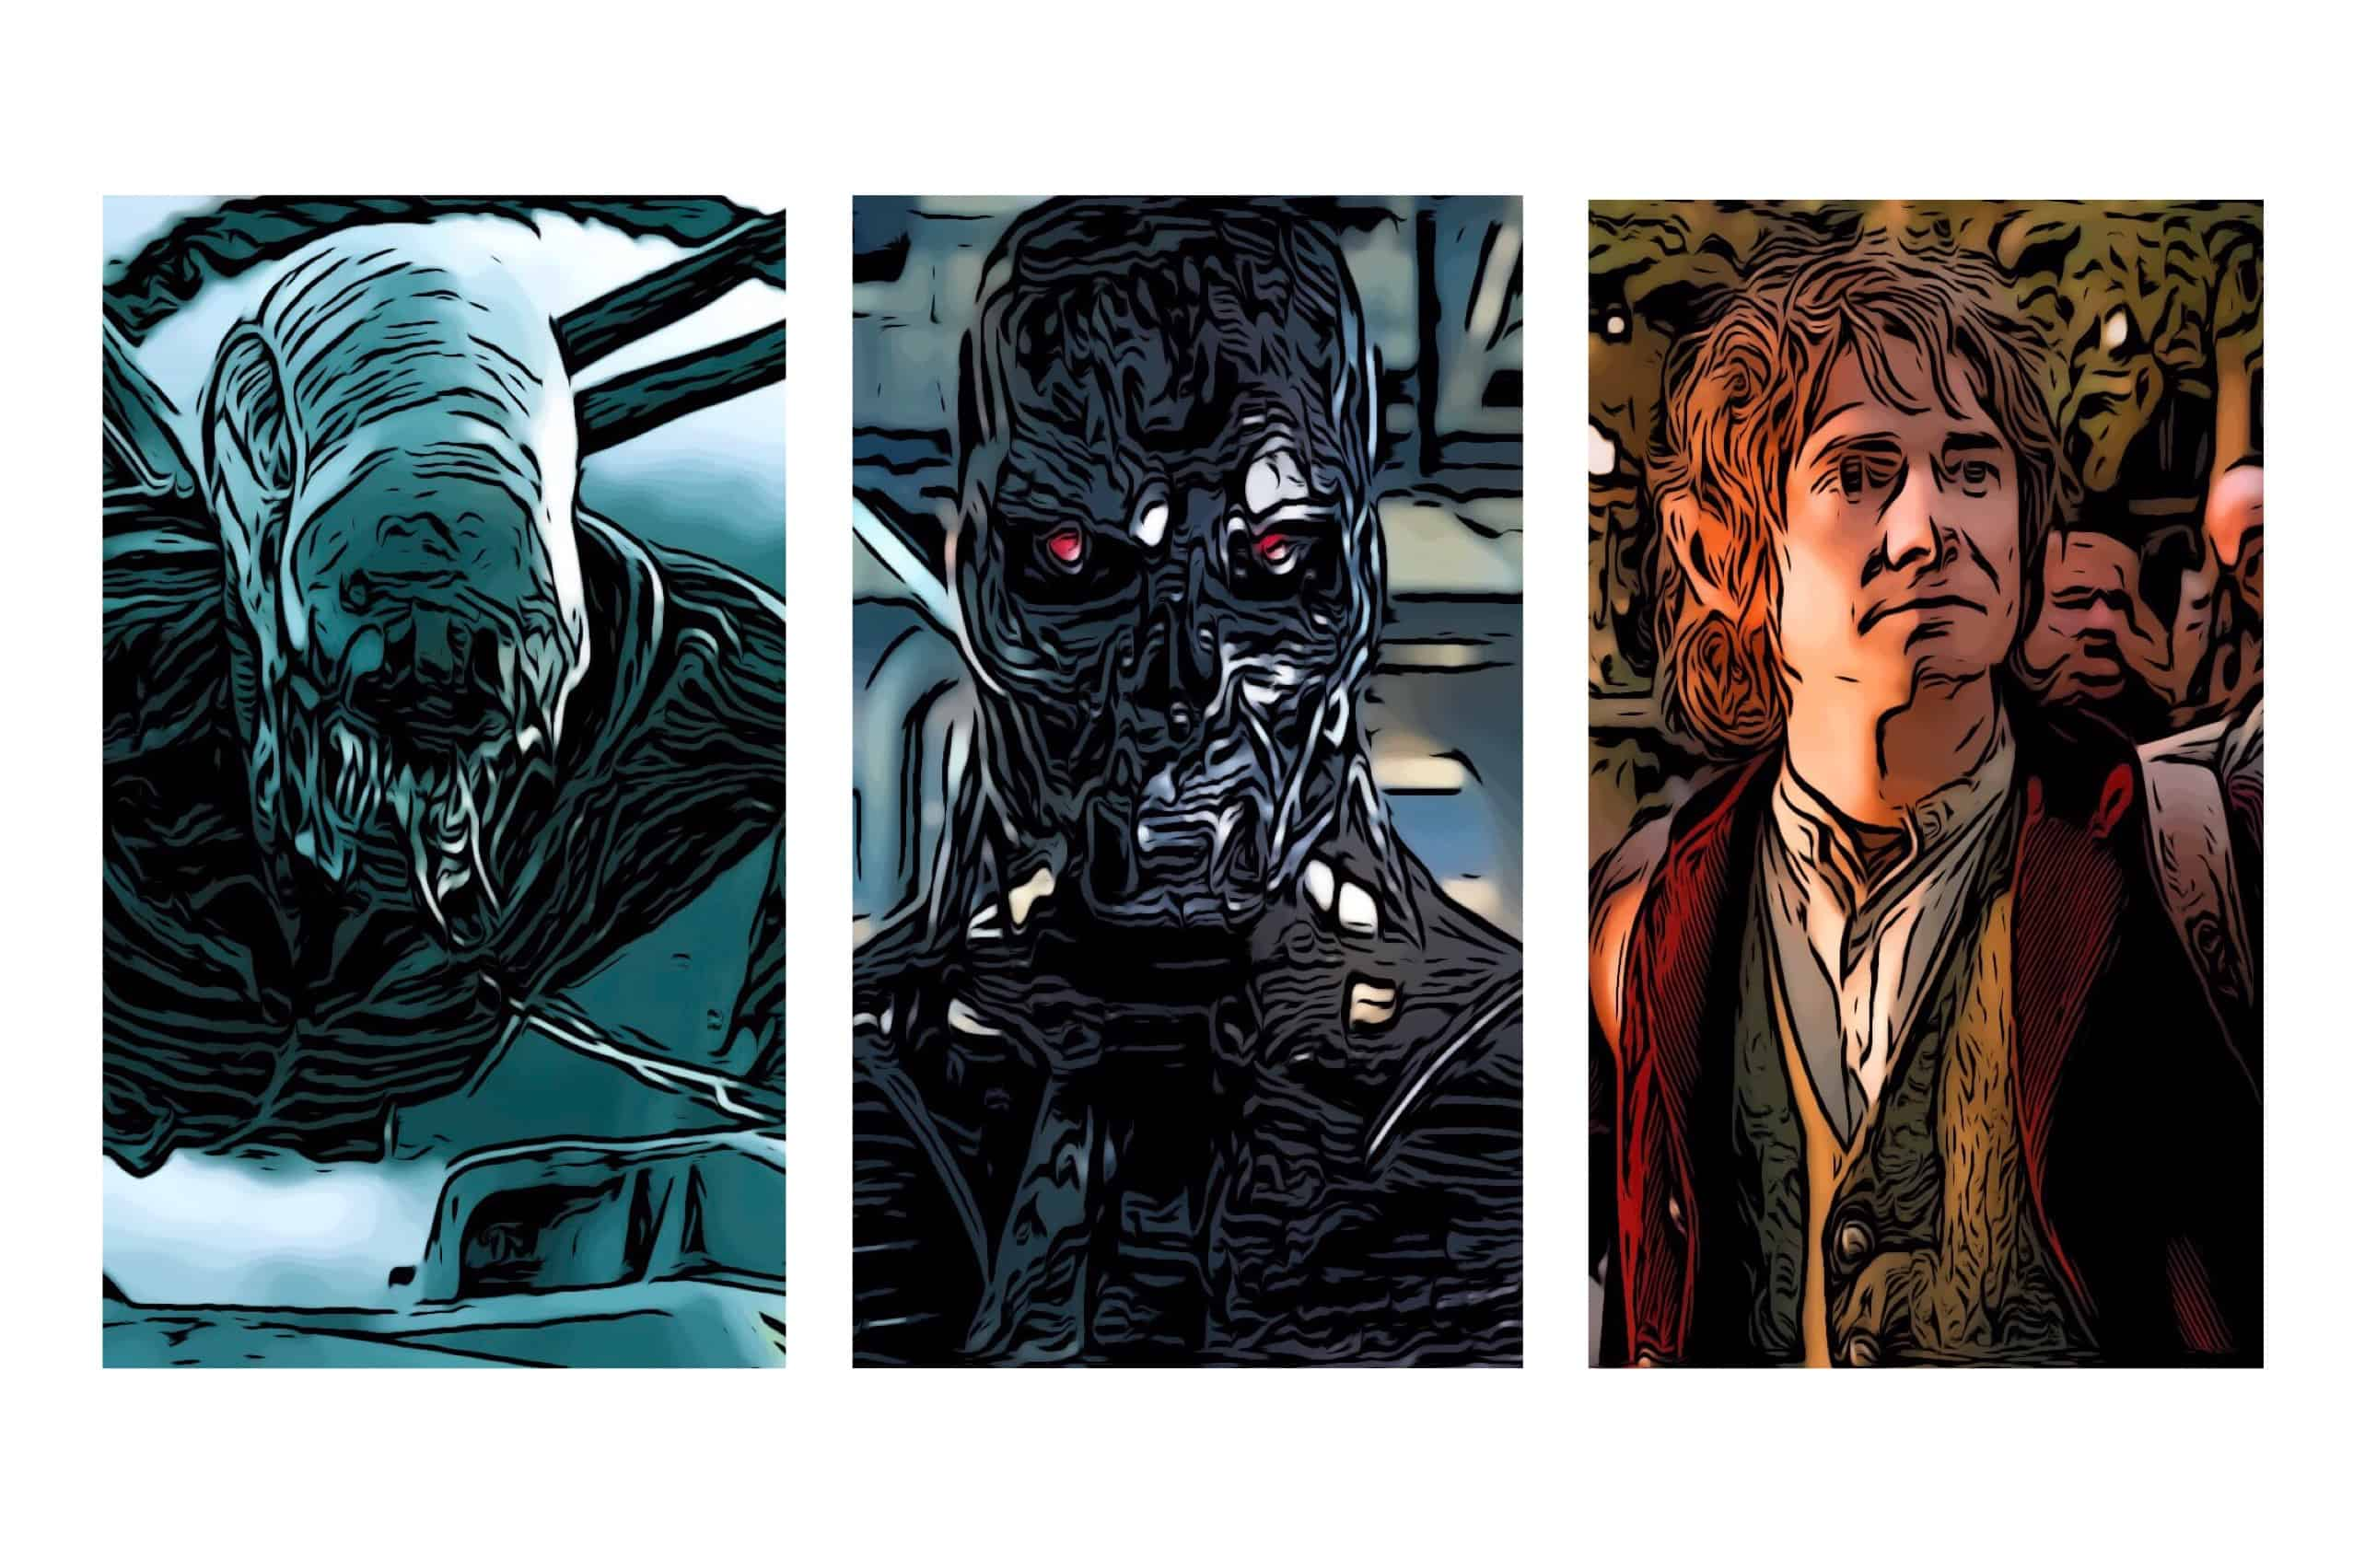 Alien, Terminator, and The Hobbit, from the best movie trilogies.